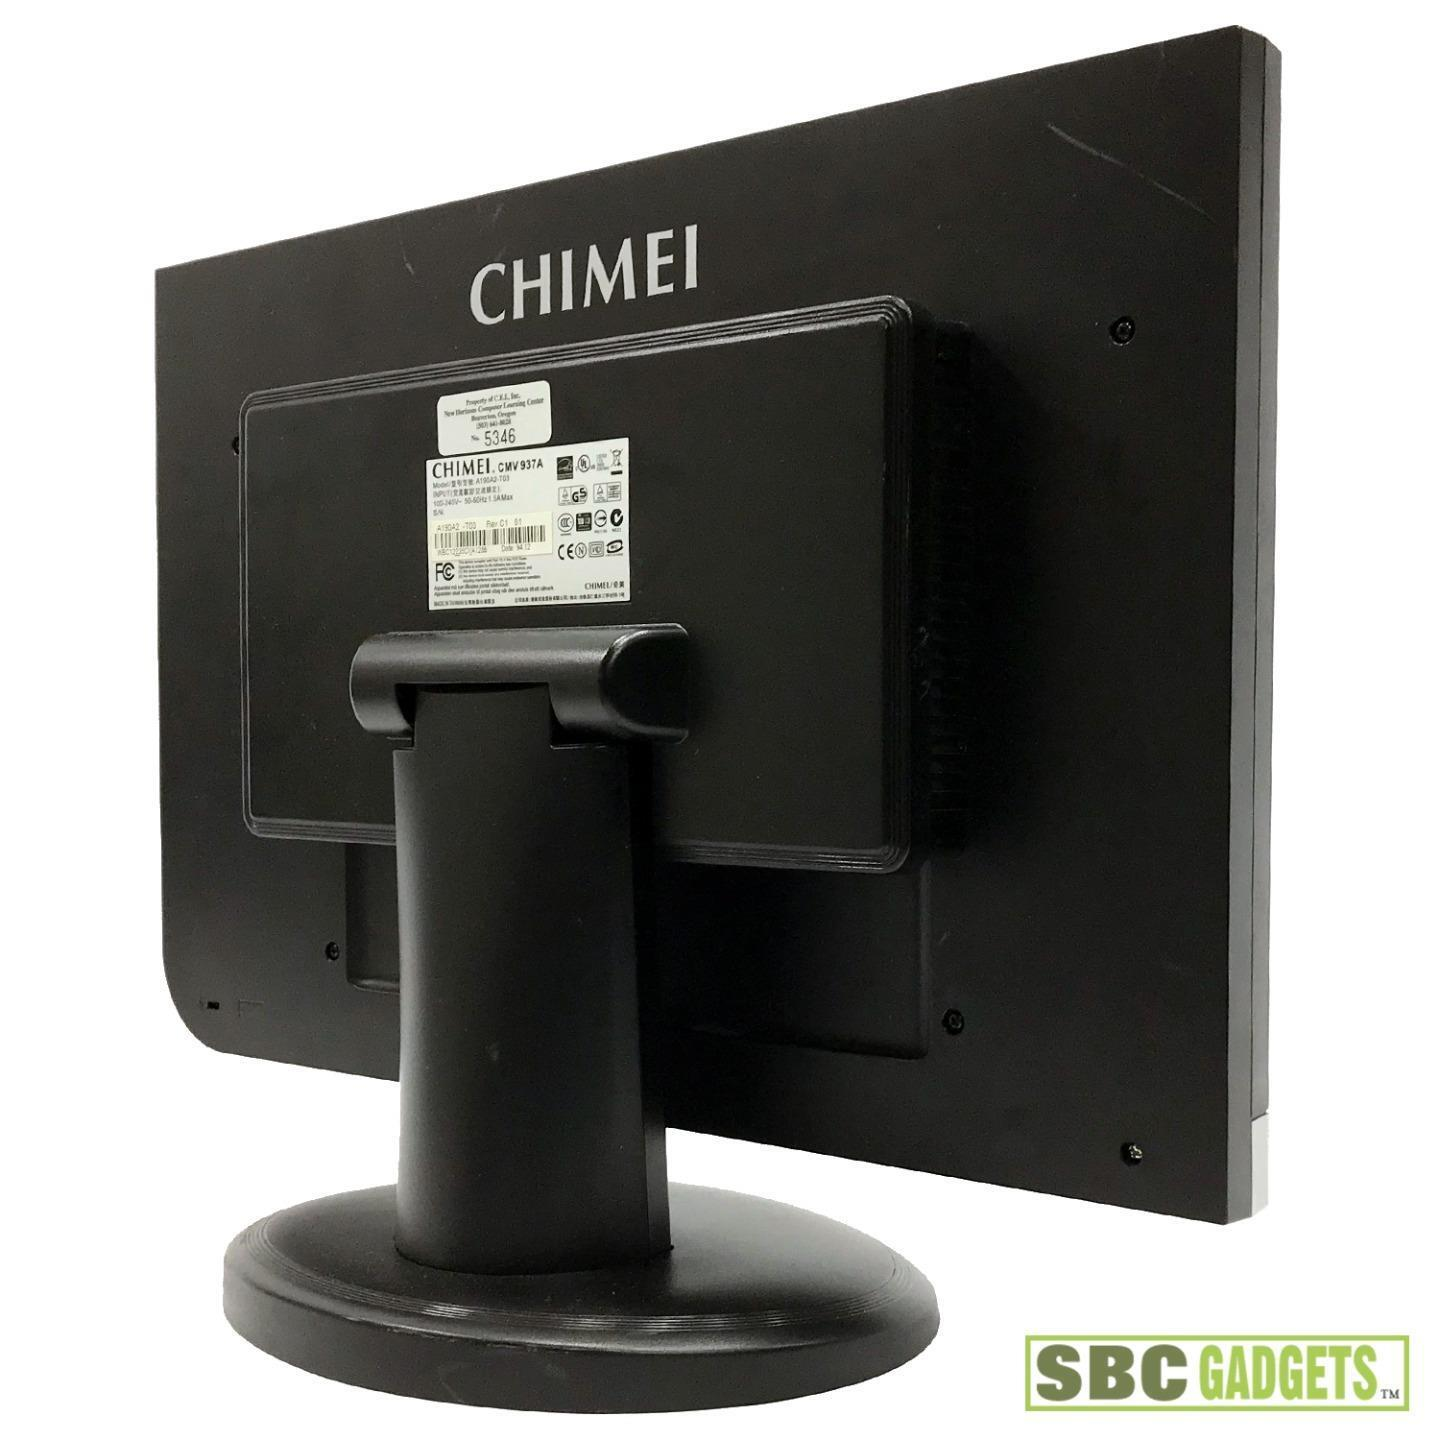 NEW DRIVERS: CHIMEI CMV937A